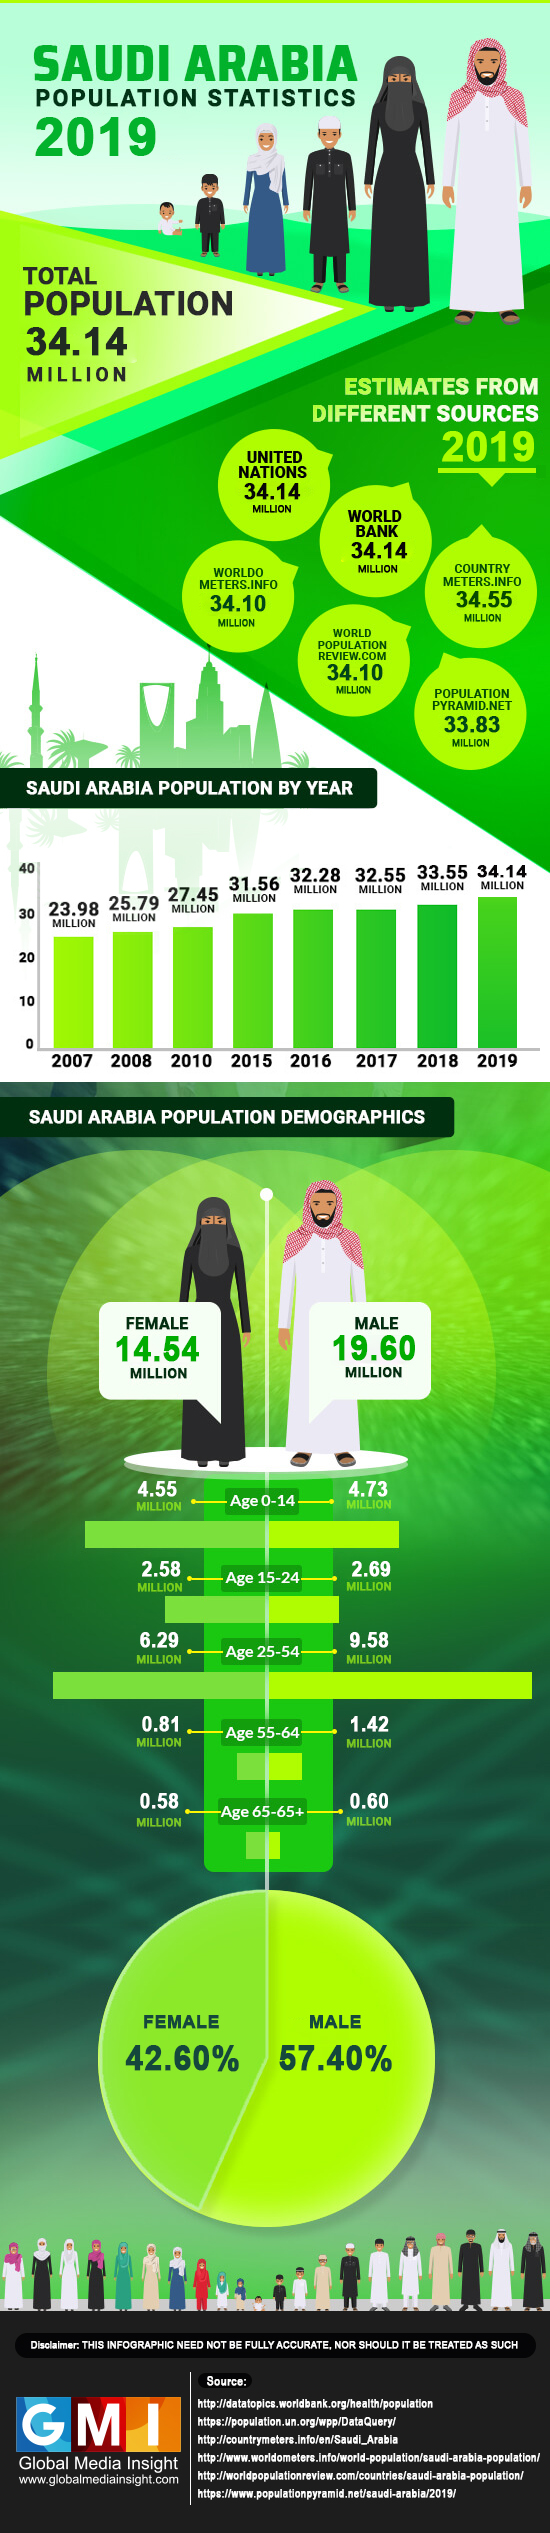 population of saudi arabia in 2019